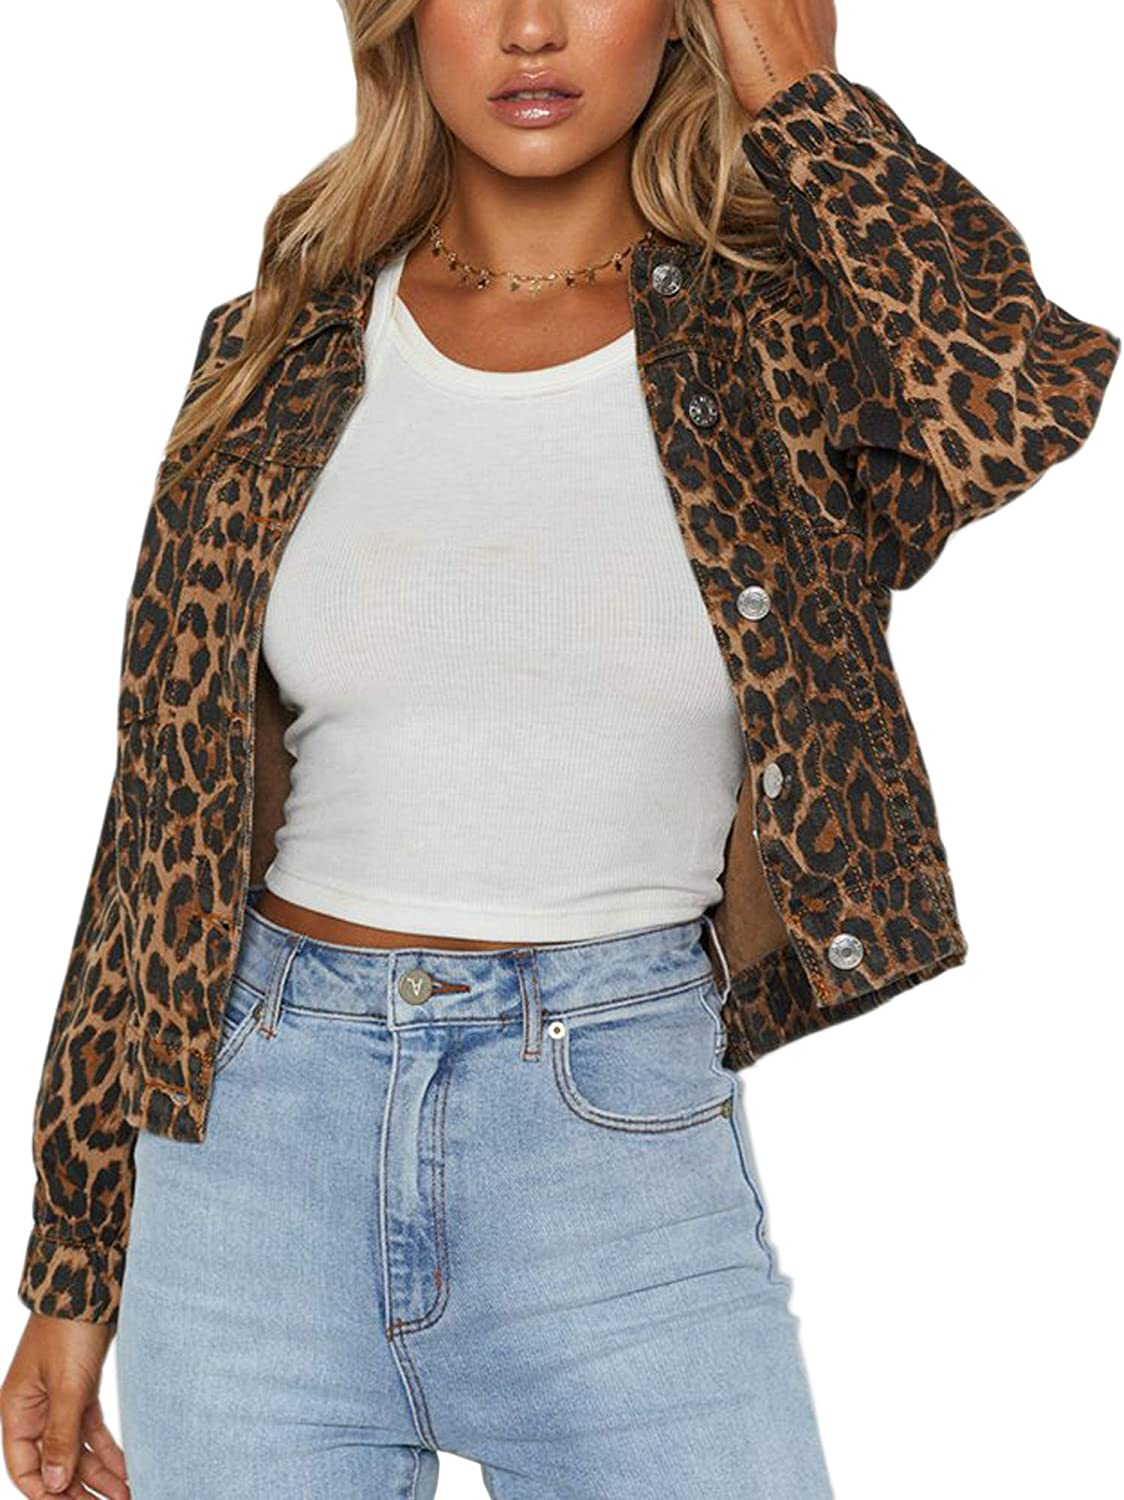 Jean Jacket Ranking All stores are sold TOP16 Women Oversized Denim Black